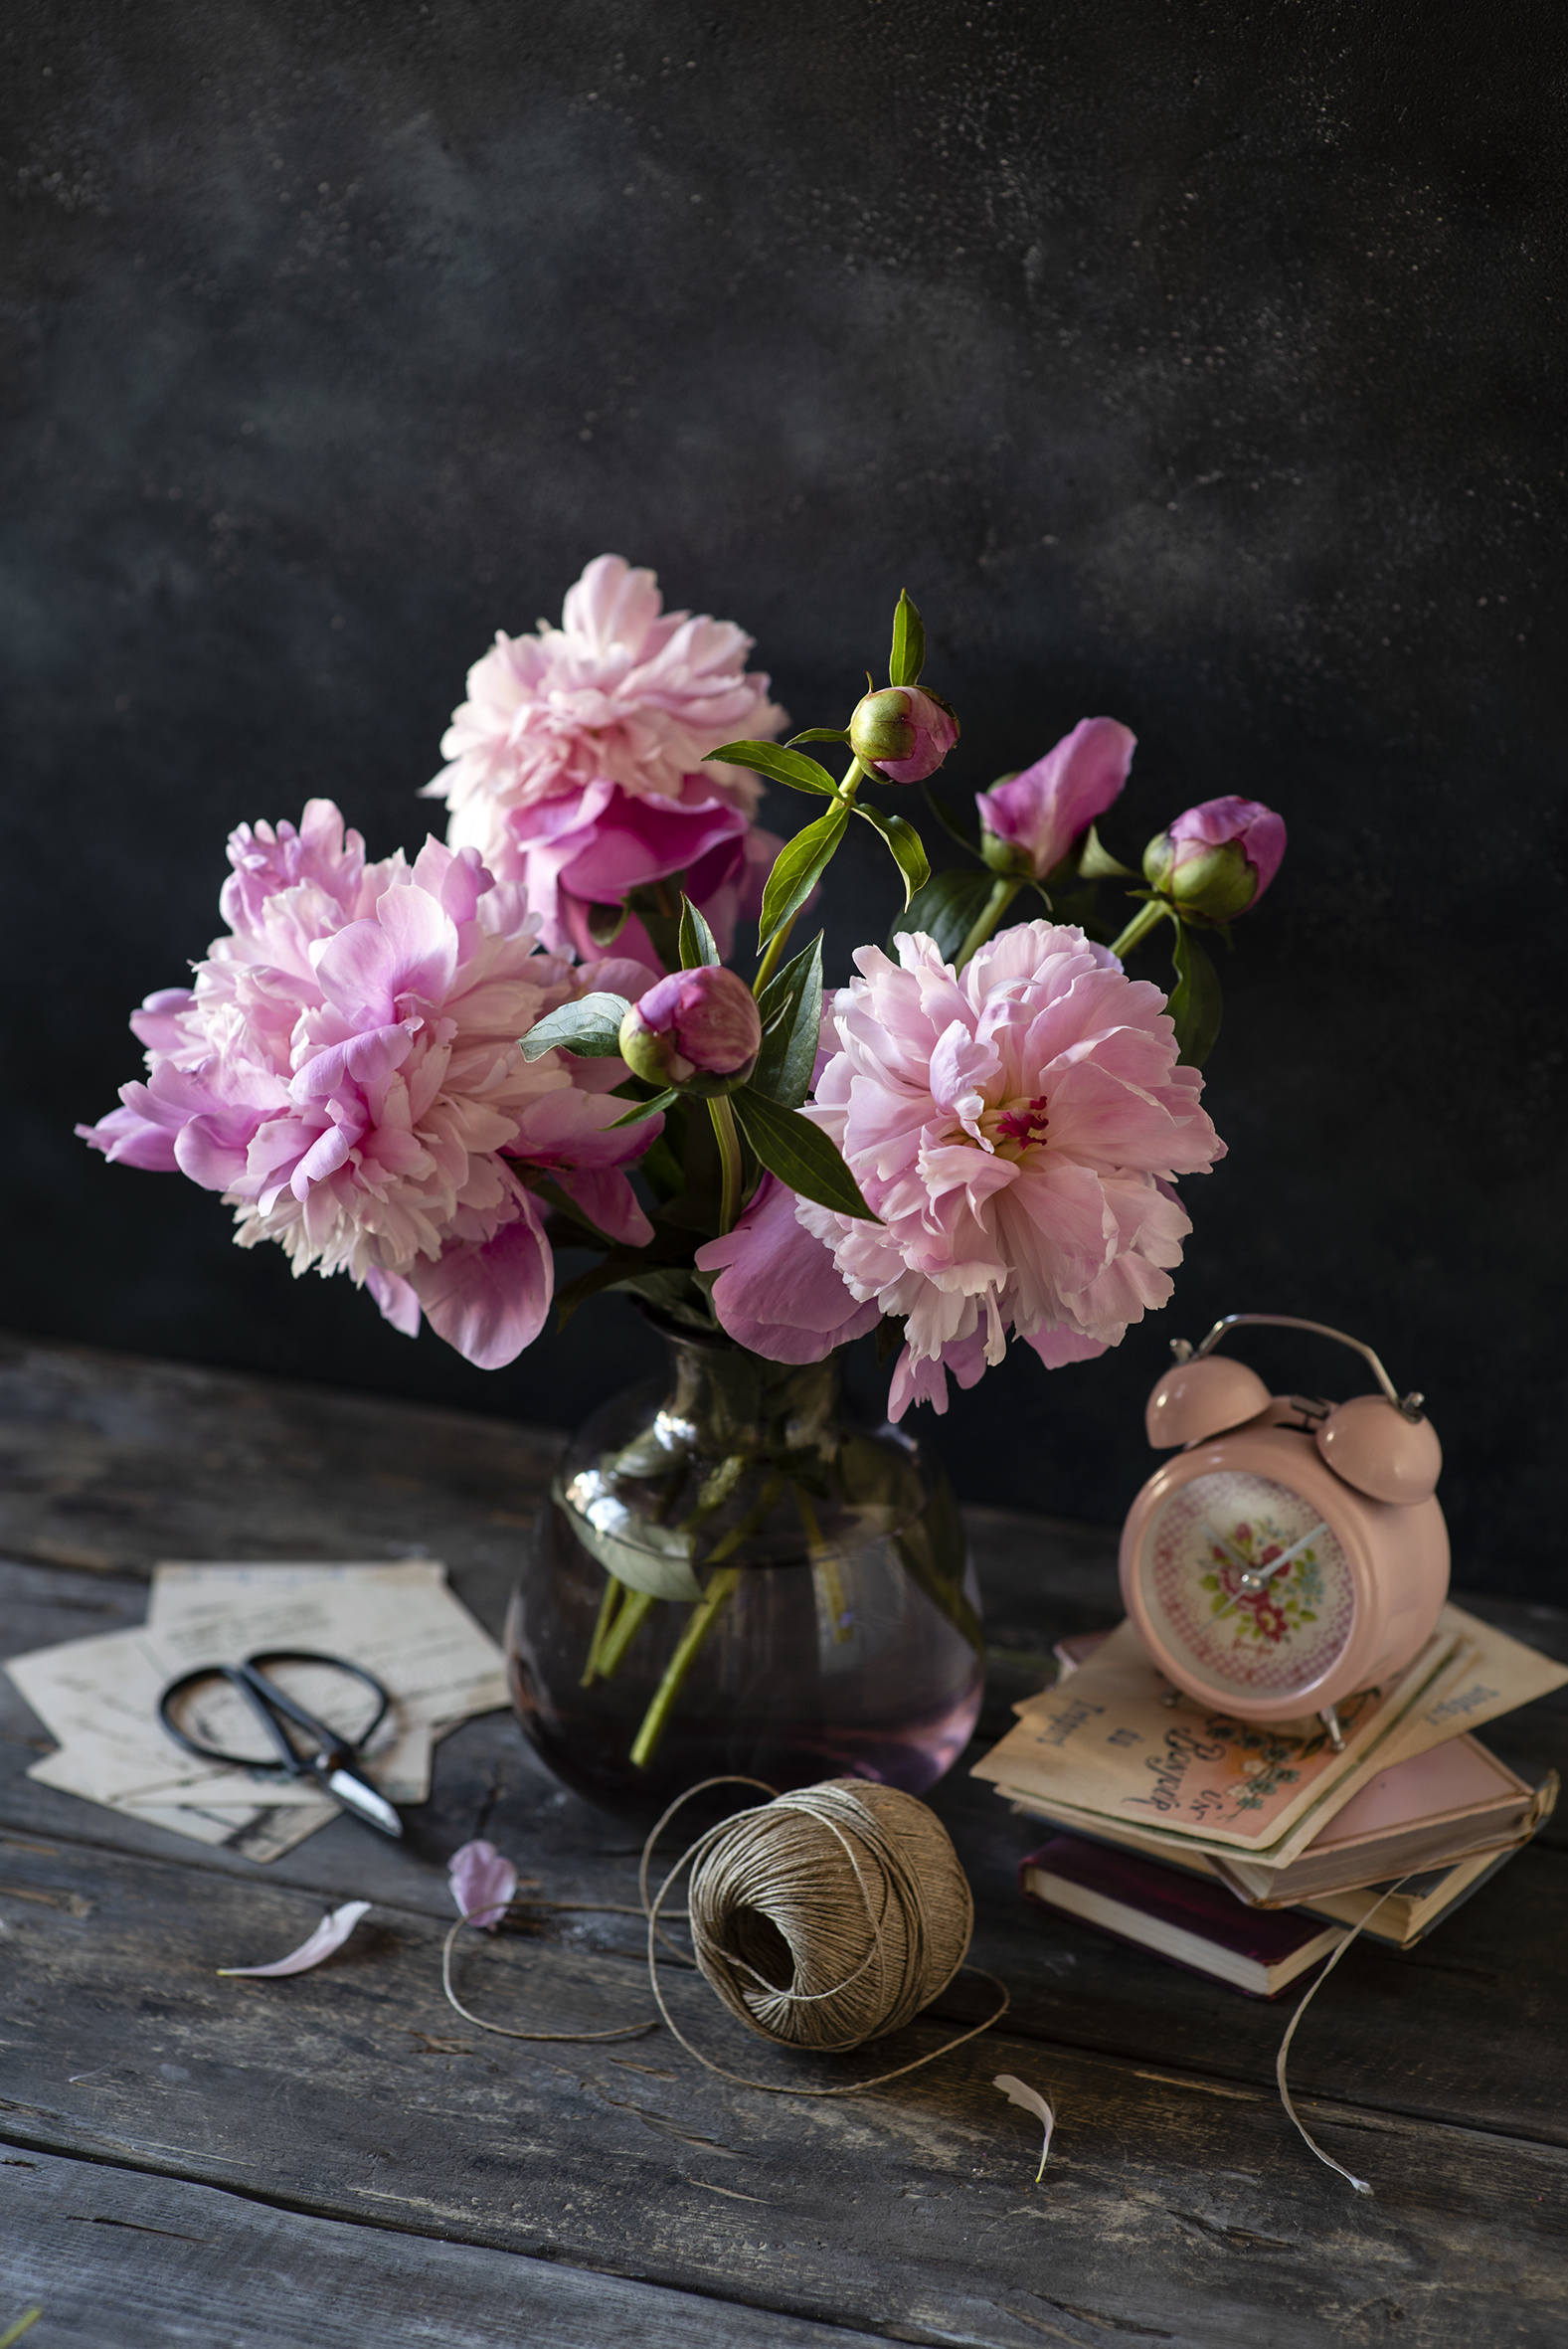 Photo Clock Pink color paeony flower Alarm clock Vase books Flower-bud Wood planks  for Mobile phone peony Peonies Flowers Book boards